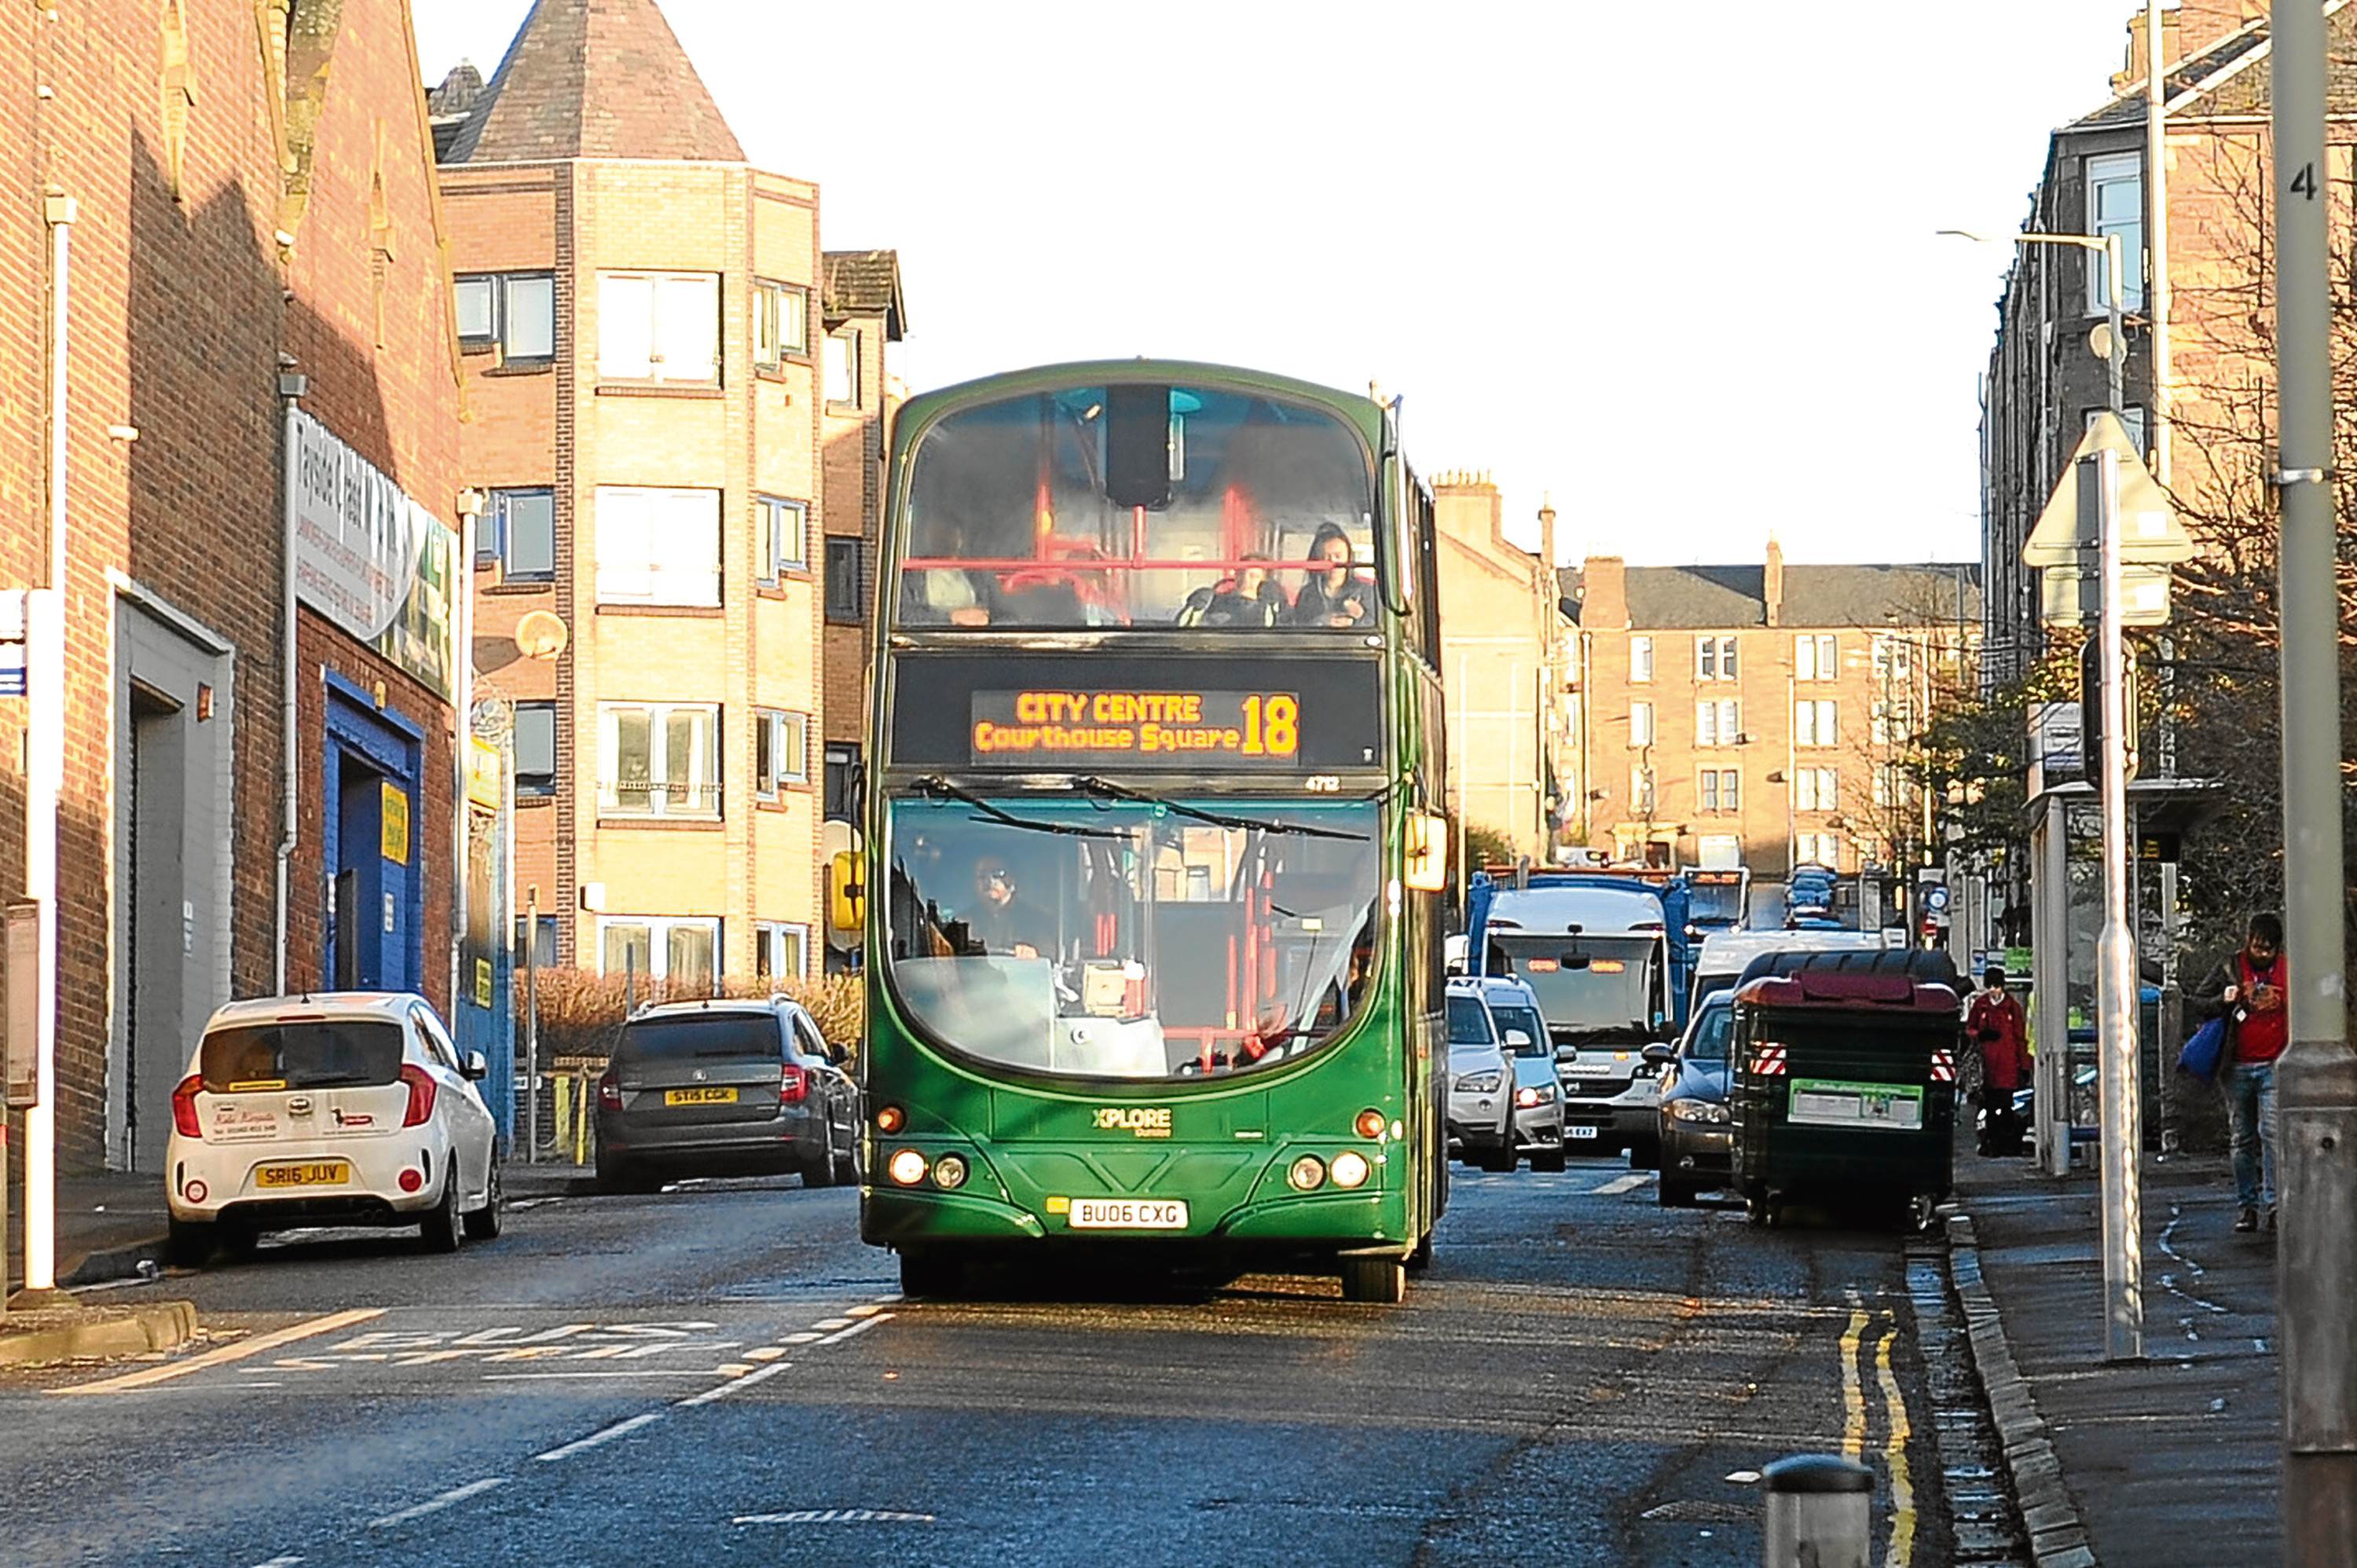 An Xplore No 18 bus on its route at Arklay Street near Dens Road.